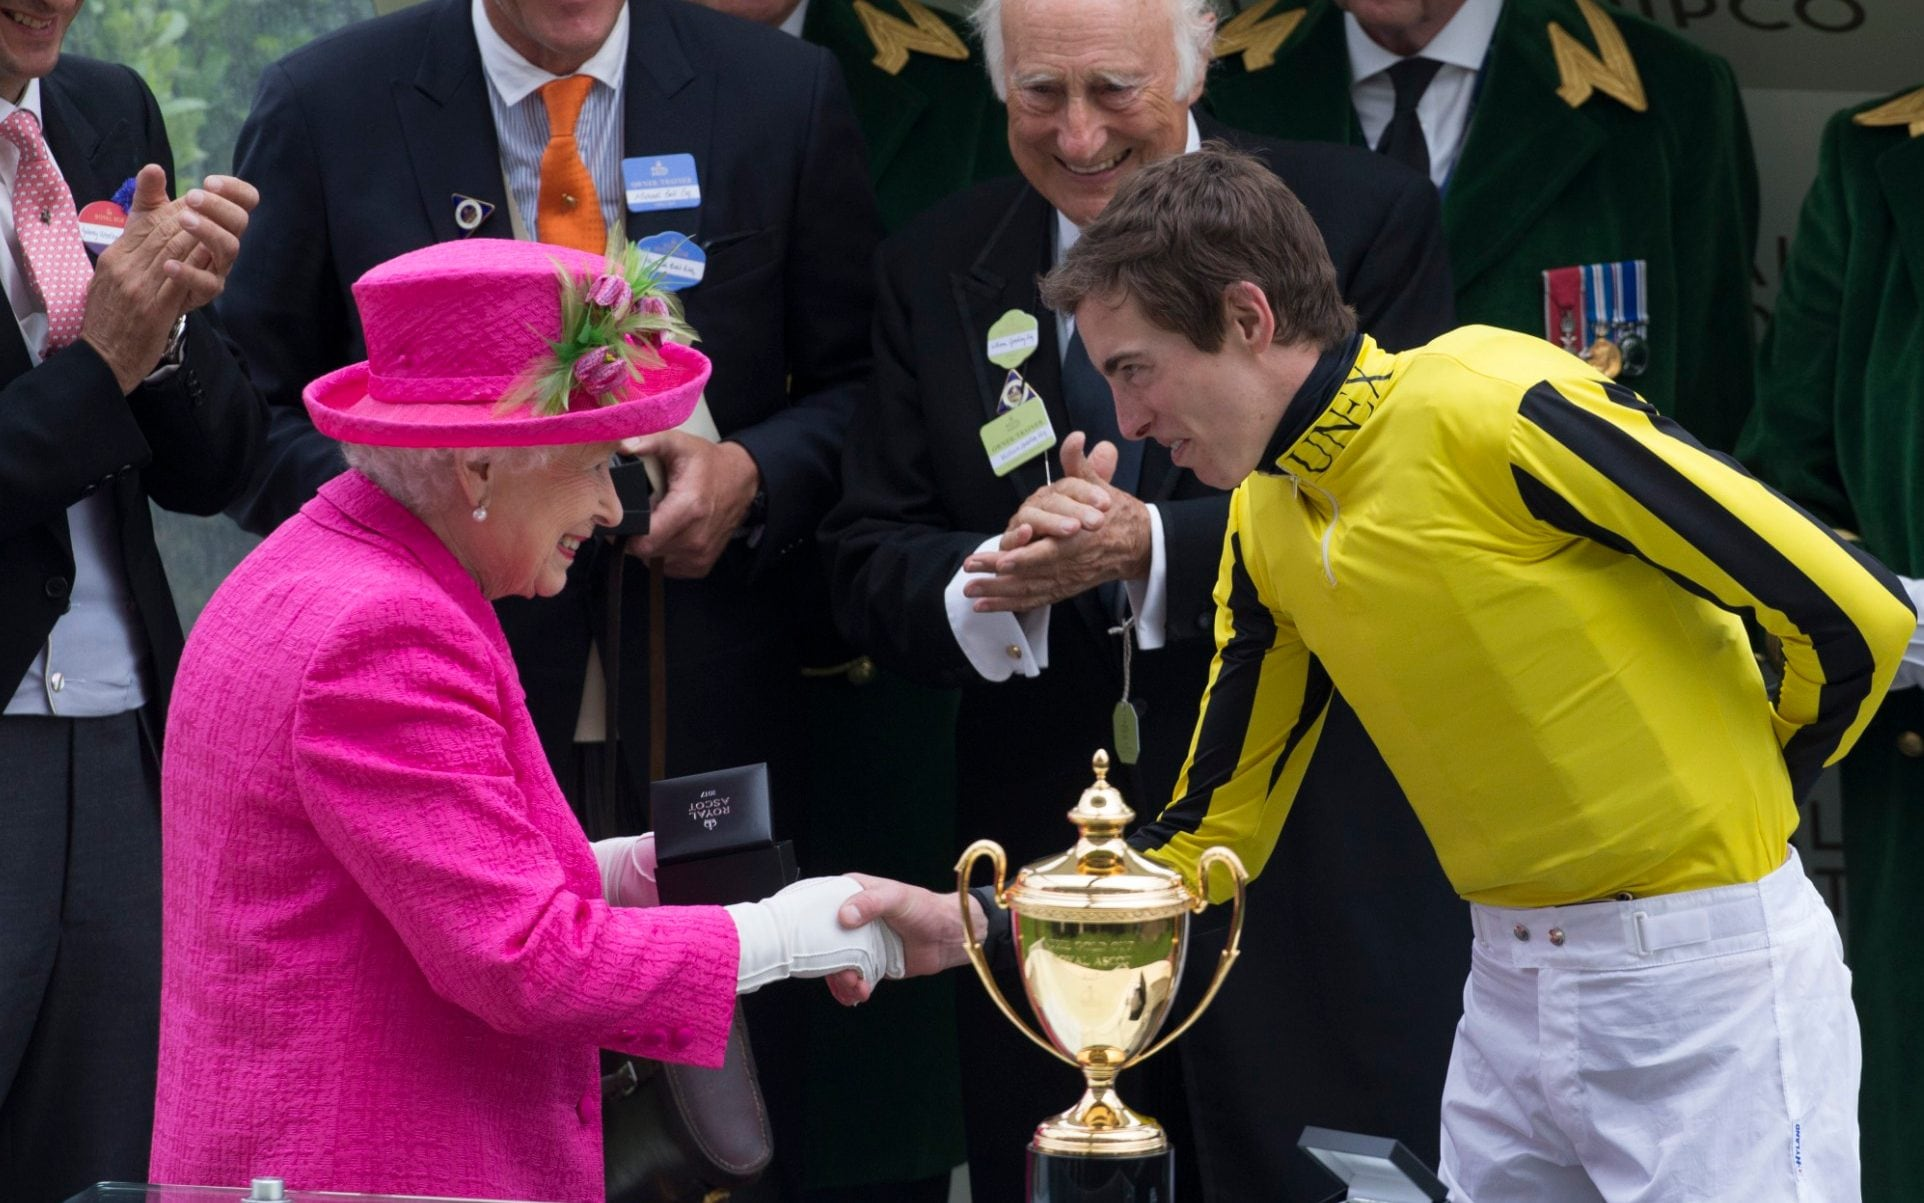 The Queen presents the Gold Cup at Royal Ascot this year